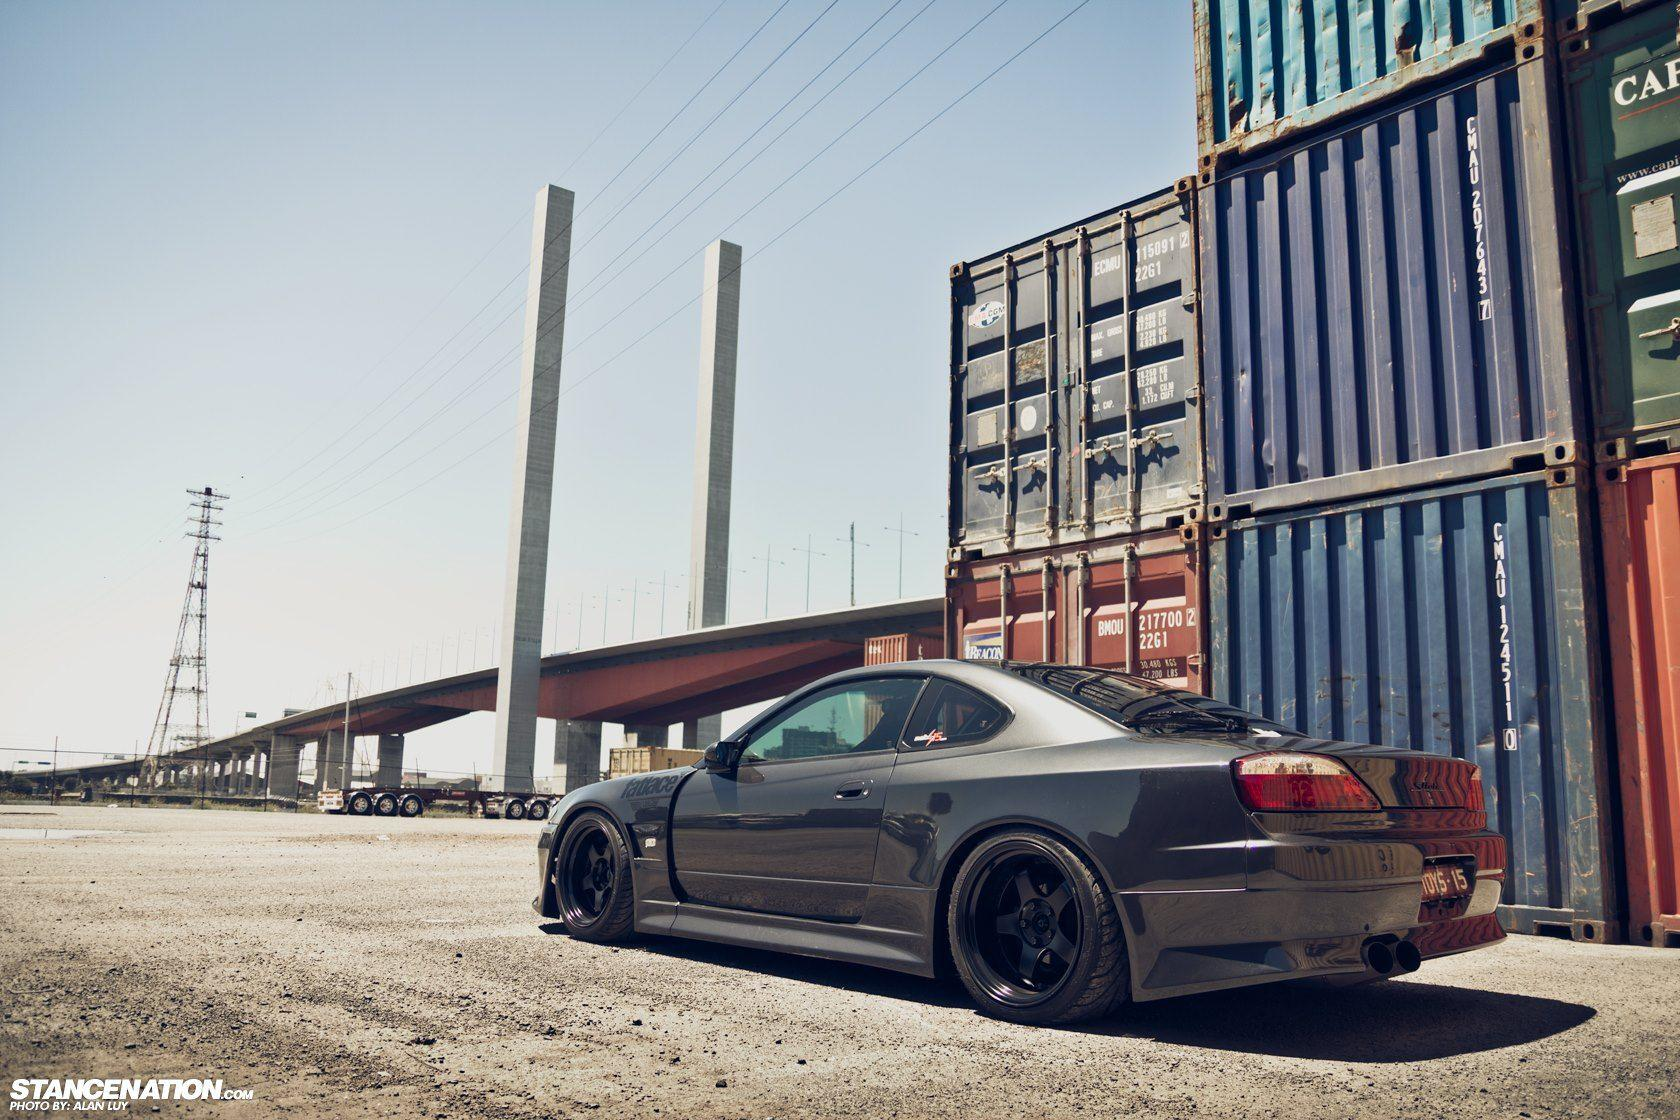 Stance image Nissan Silvia S15 HD wallpapers and backgrounds photos